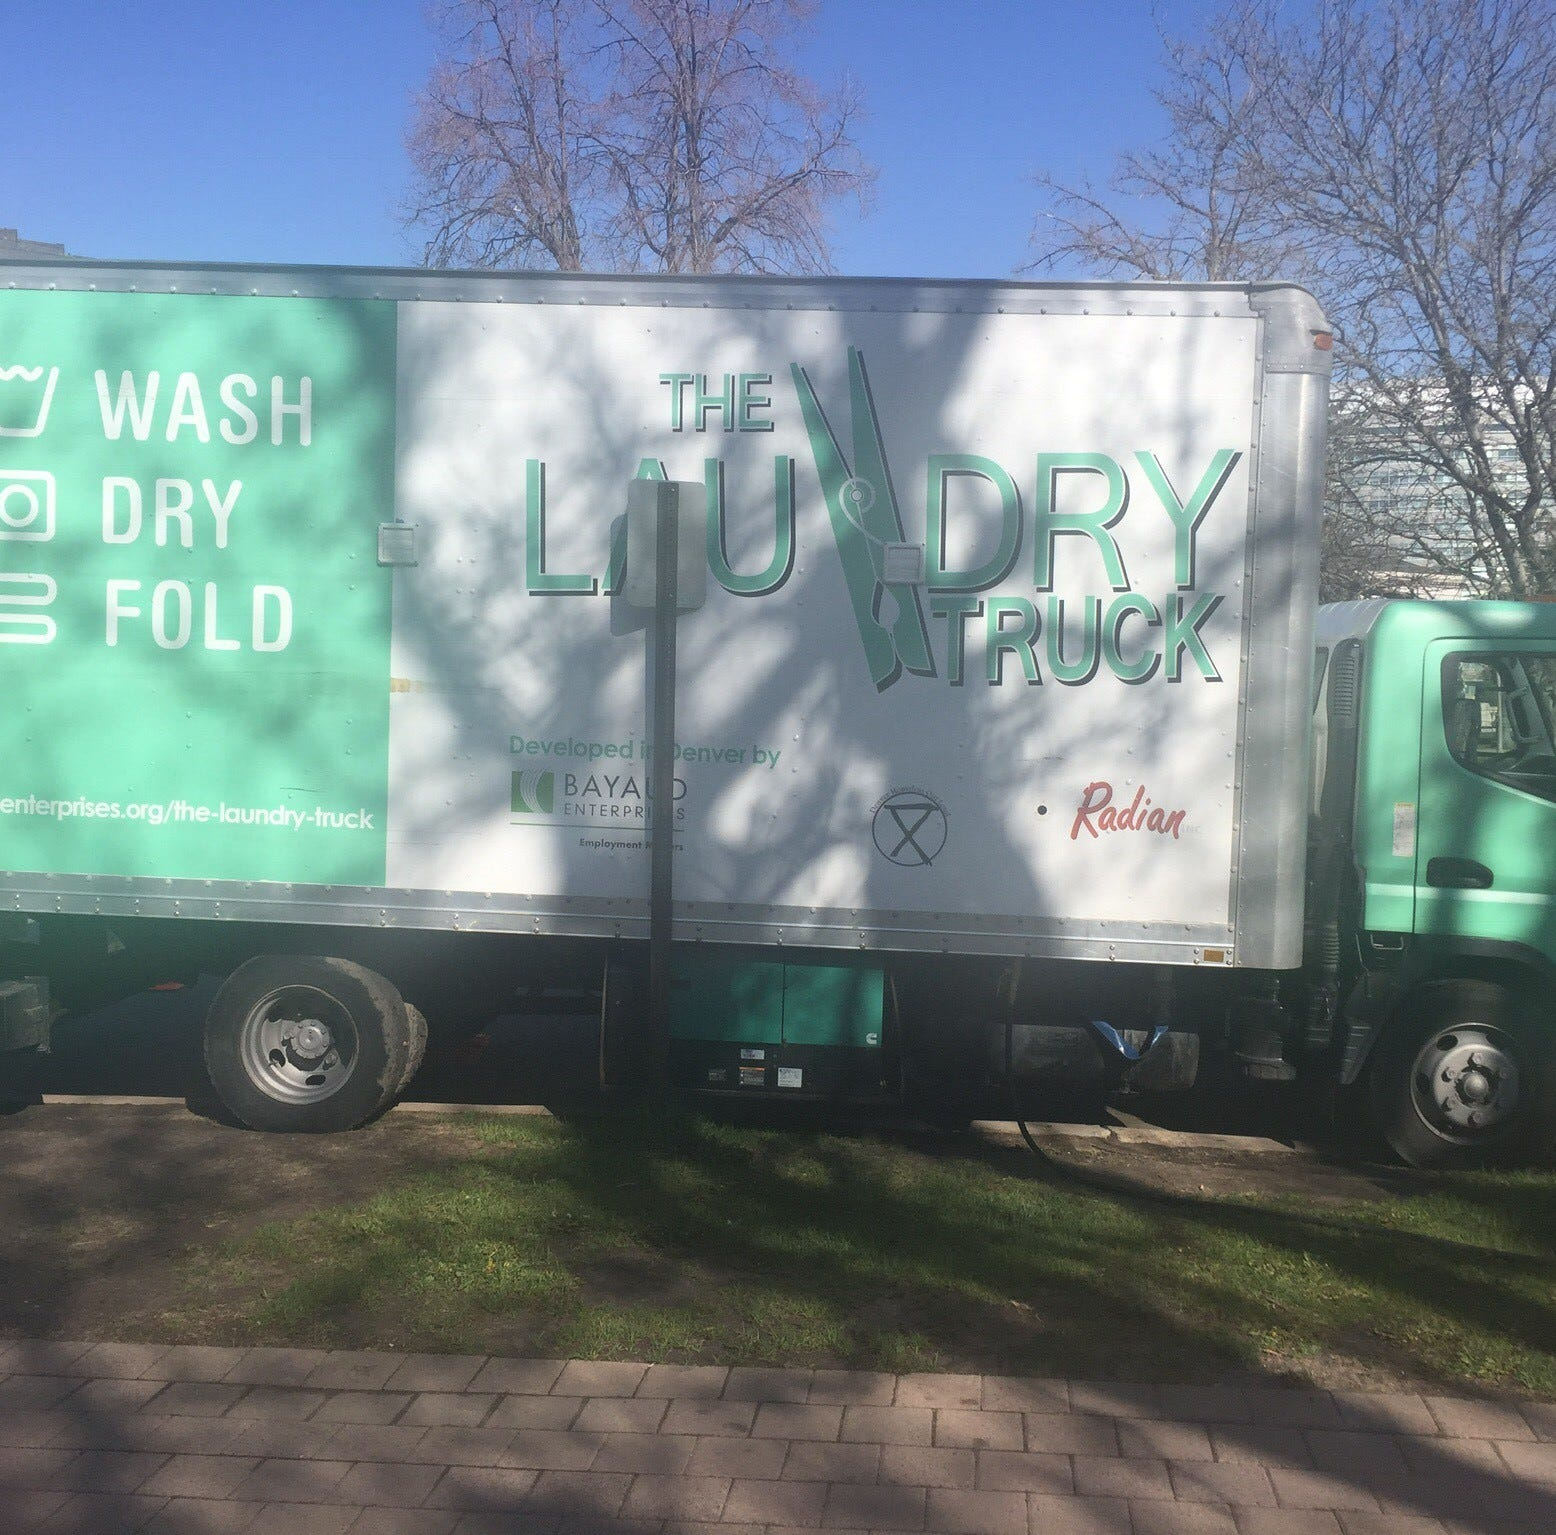 Get a sneak peek at the laundry truck that could soon help the homeless in Fort Collins